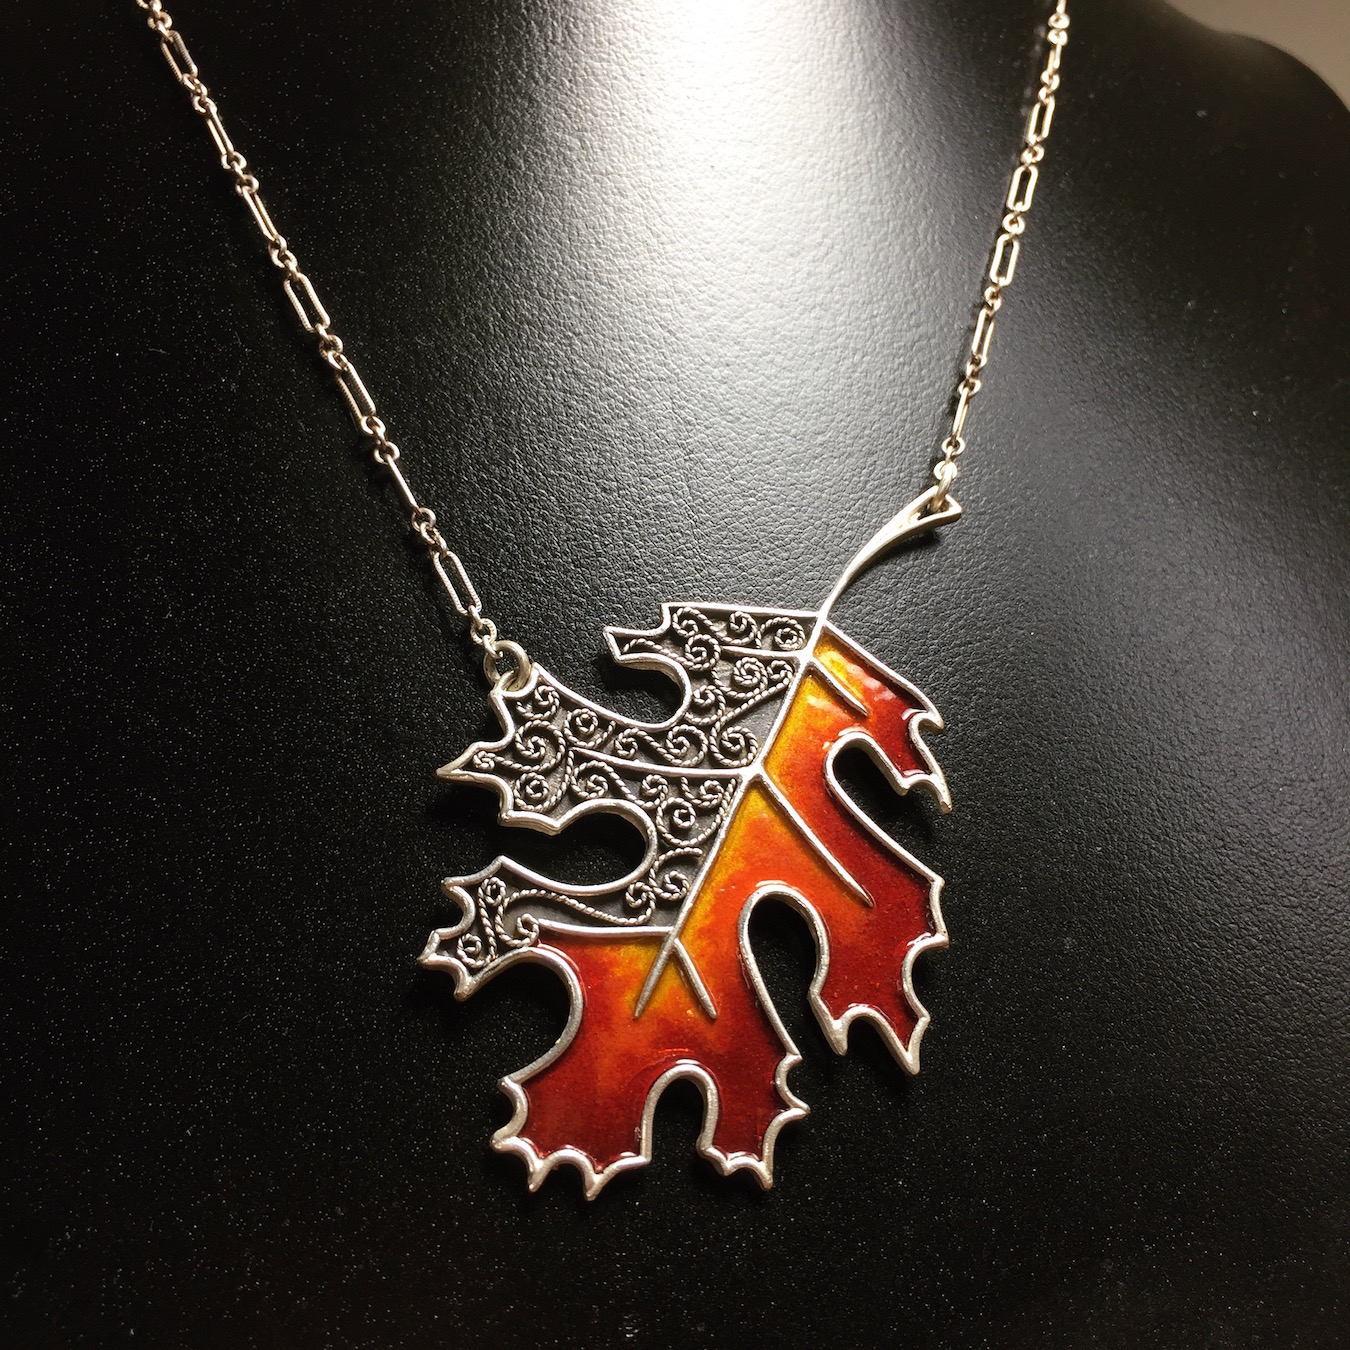 handmade-jewelry-asheville-autumn-leaf-nora-julia-necklace-enamel-silver